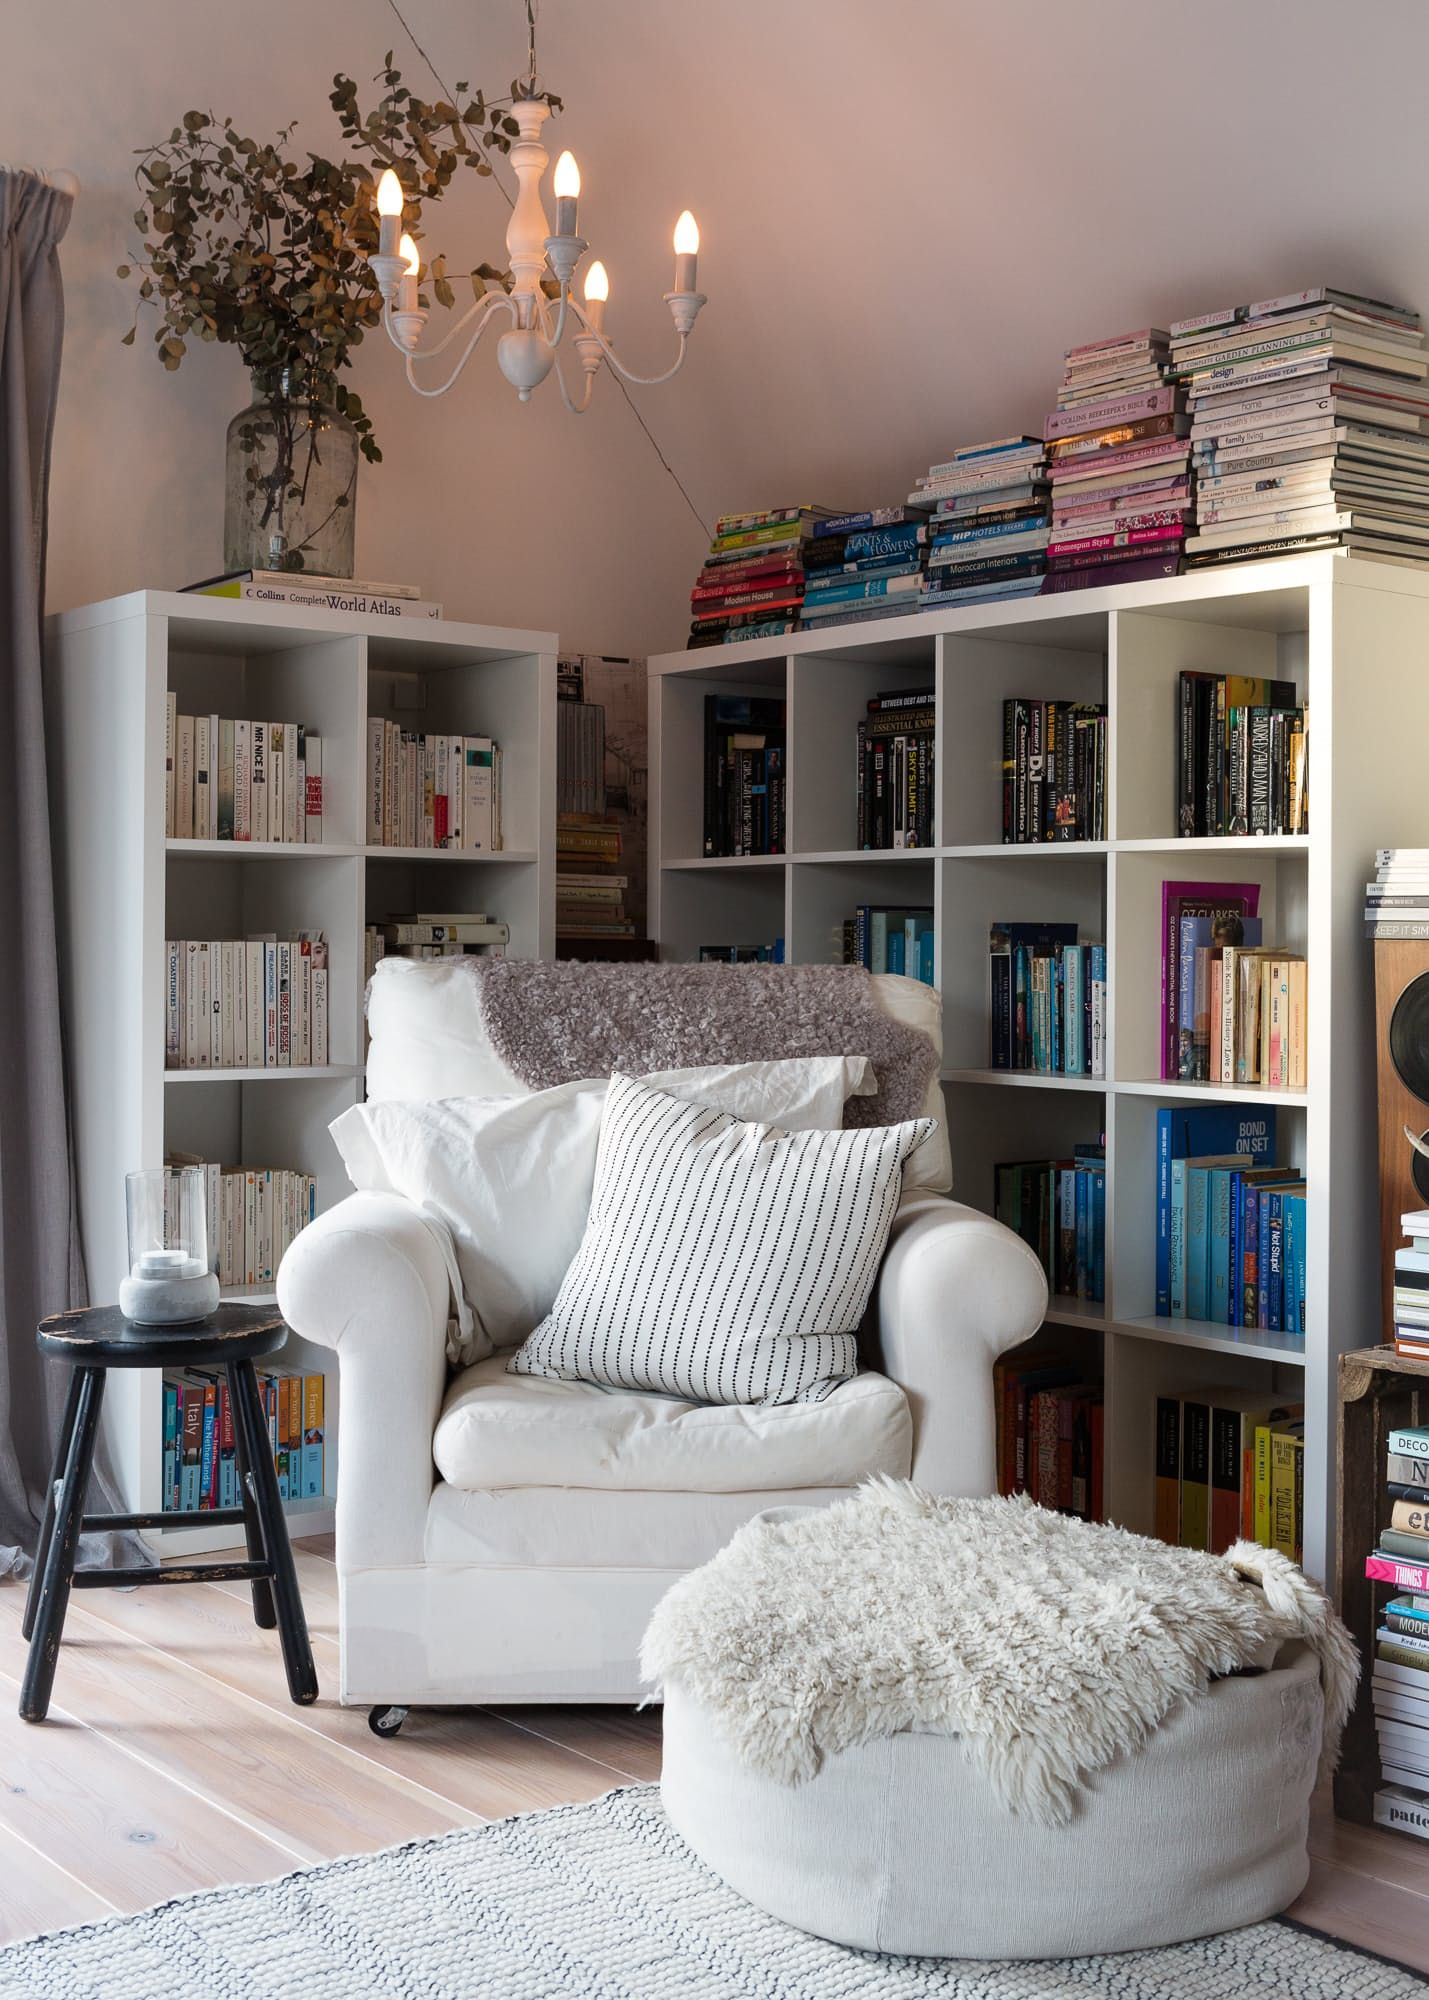 Bedroom chair reading - A Cosy Reading Corner In The Loft